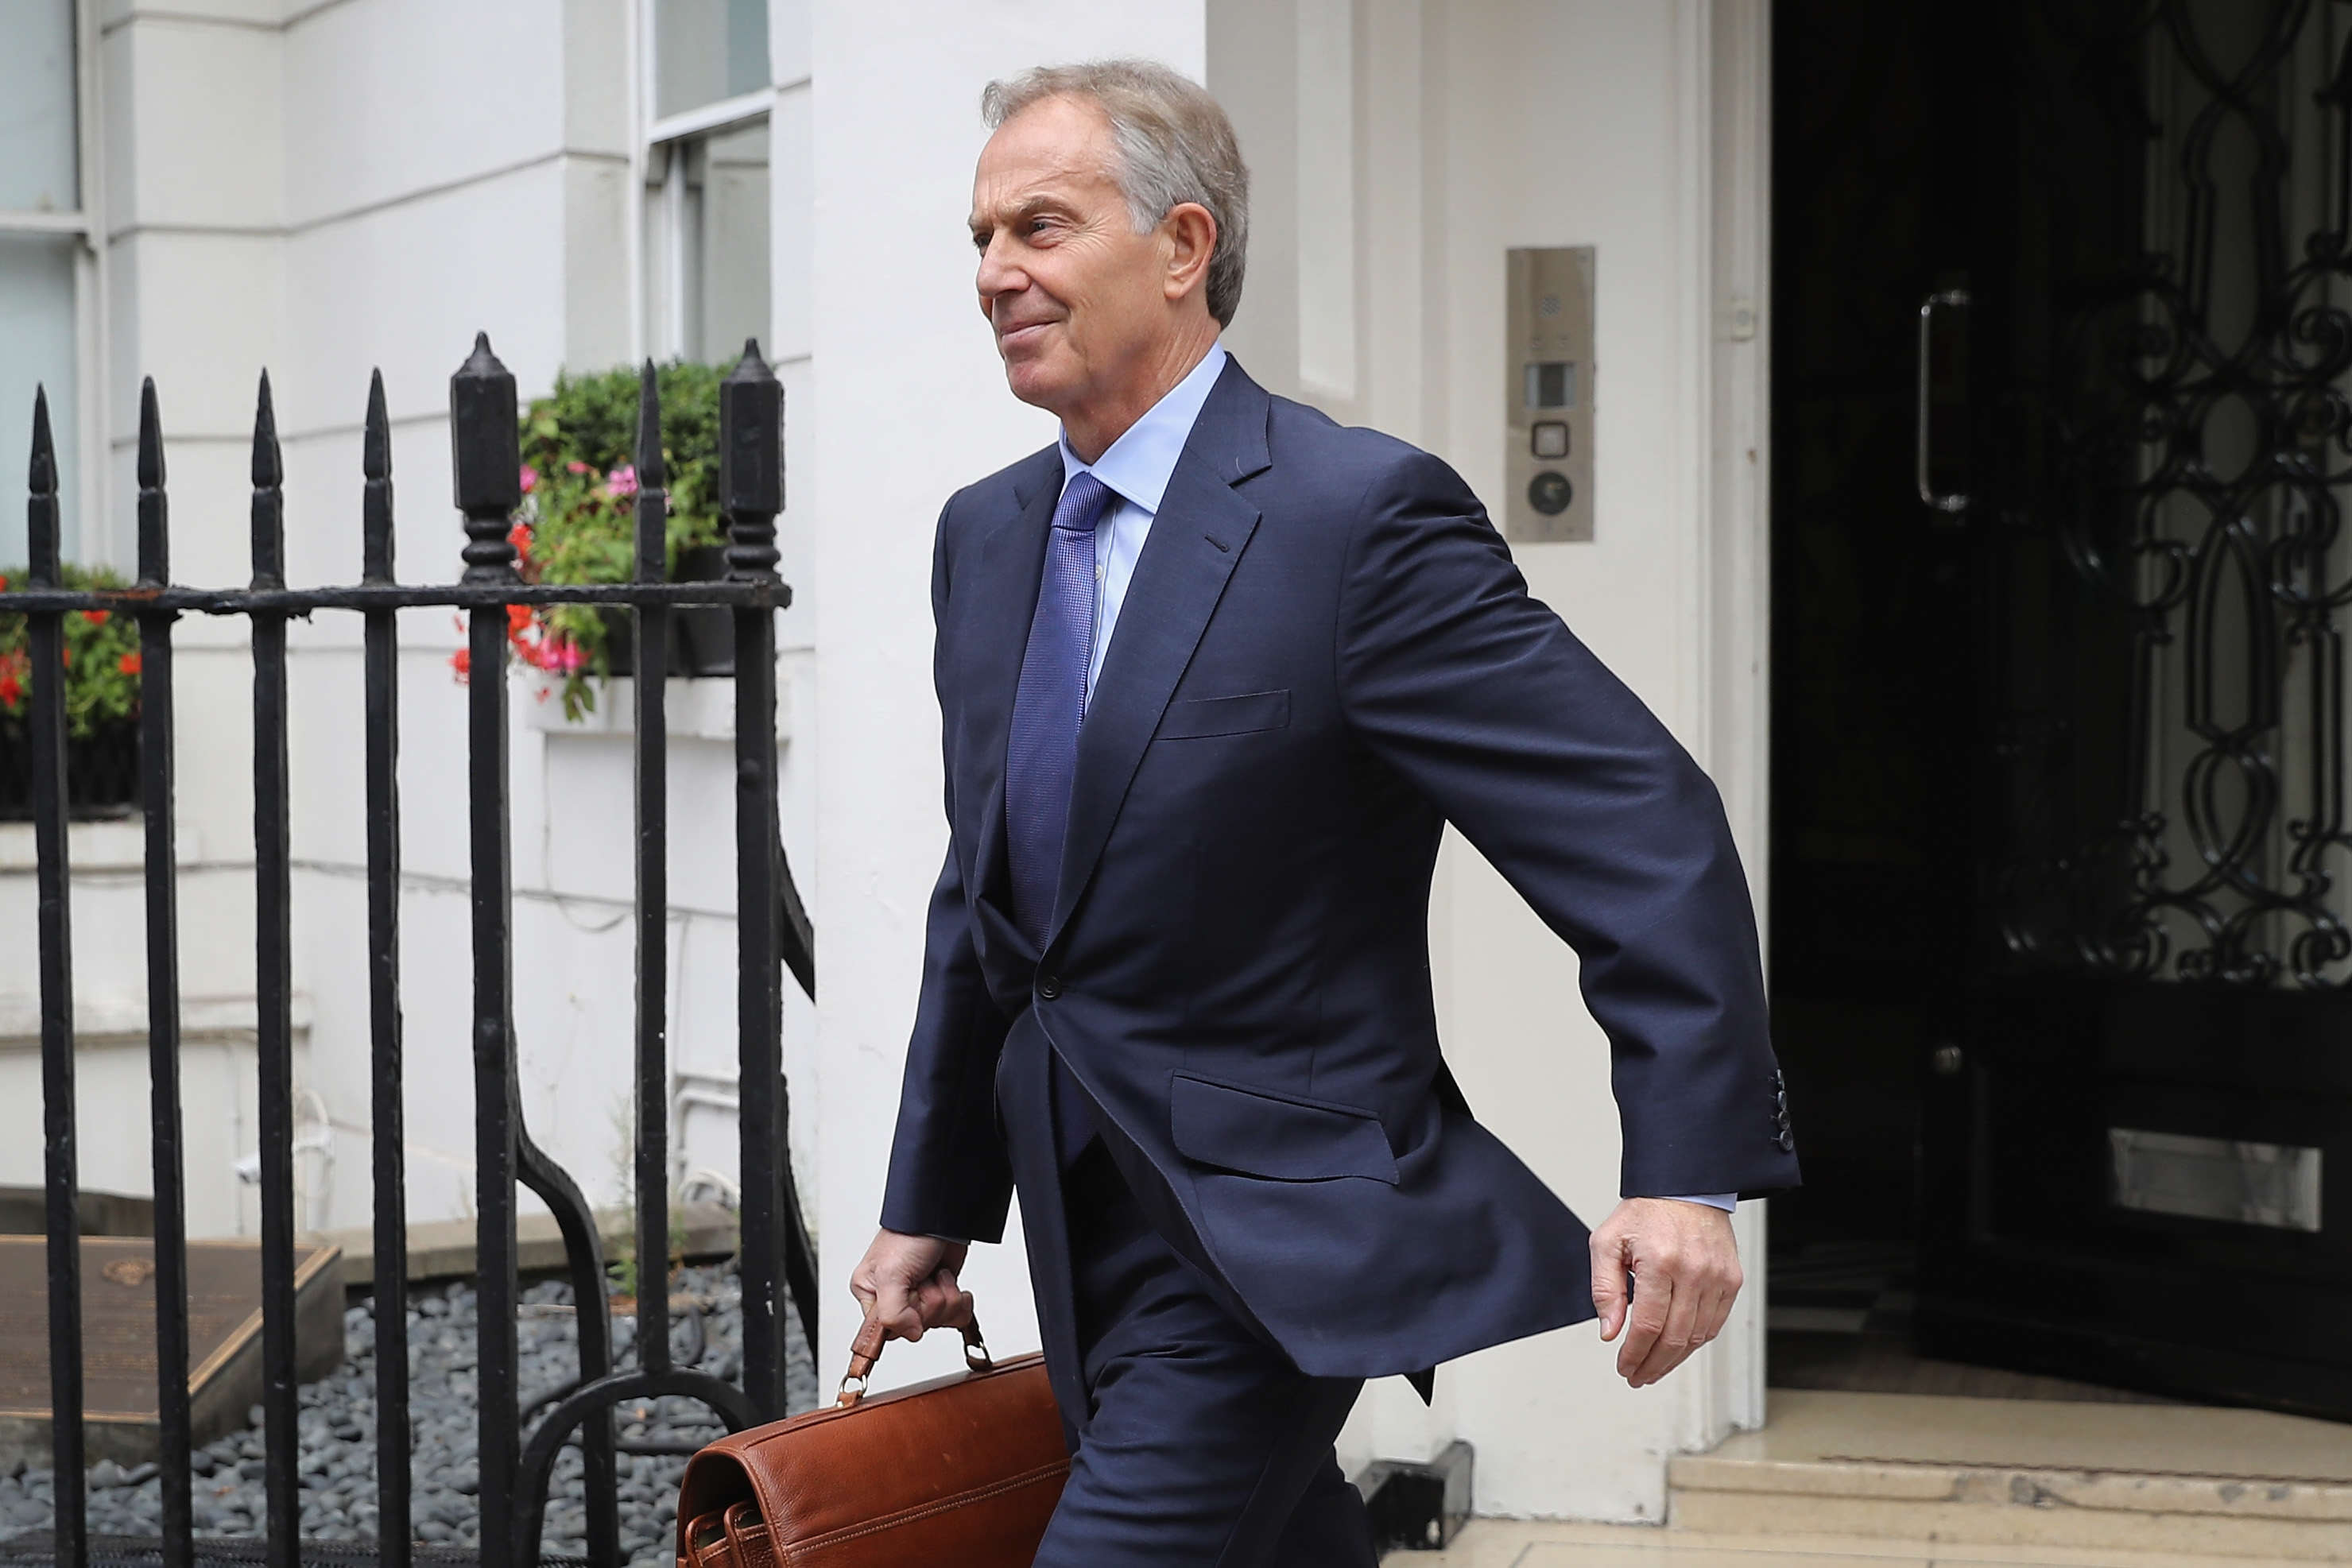 Tony Blair On The Eve Of The Chilcot Inquiry Publication